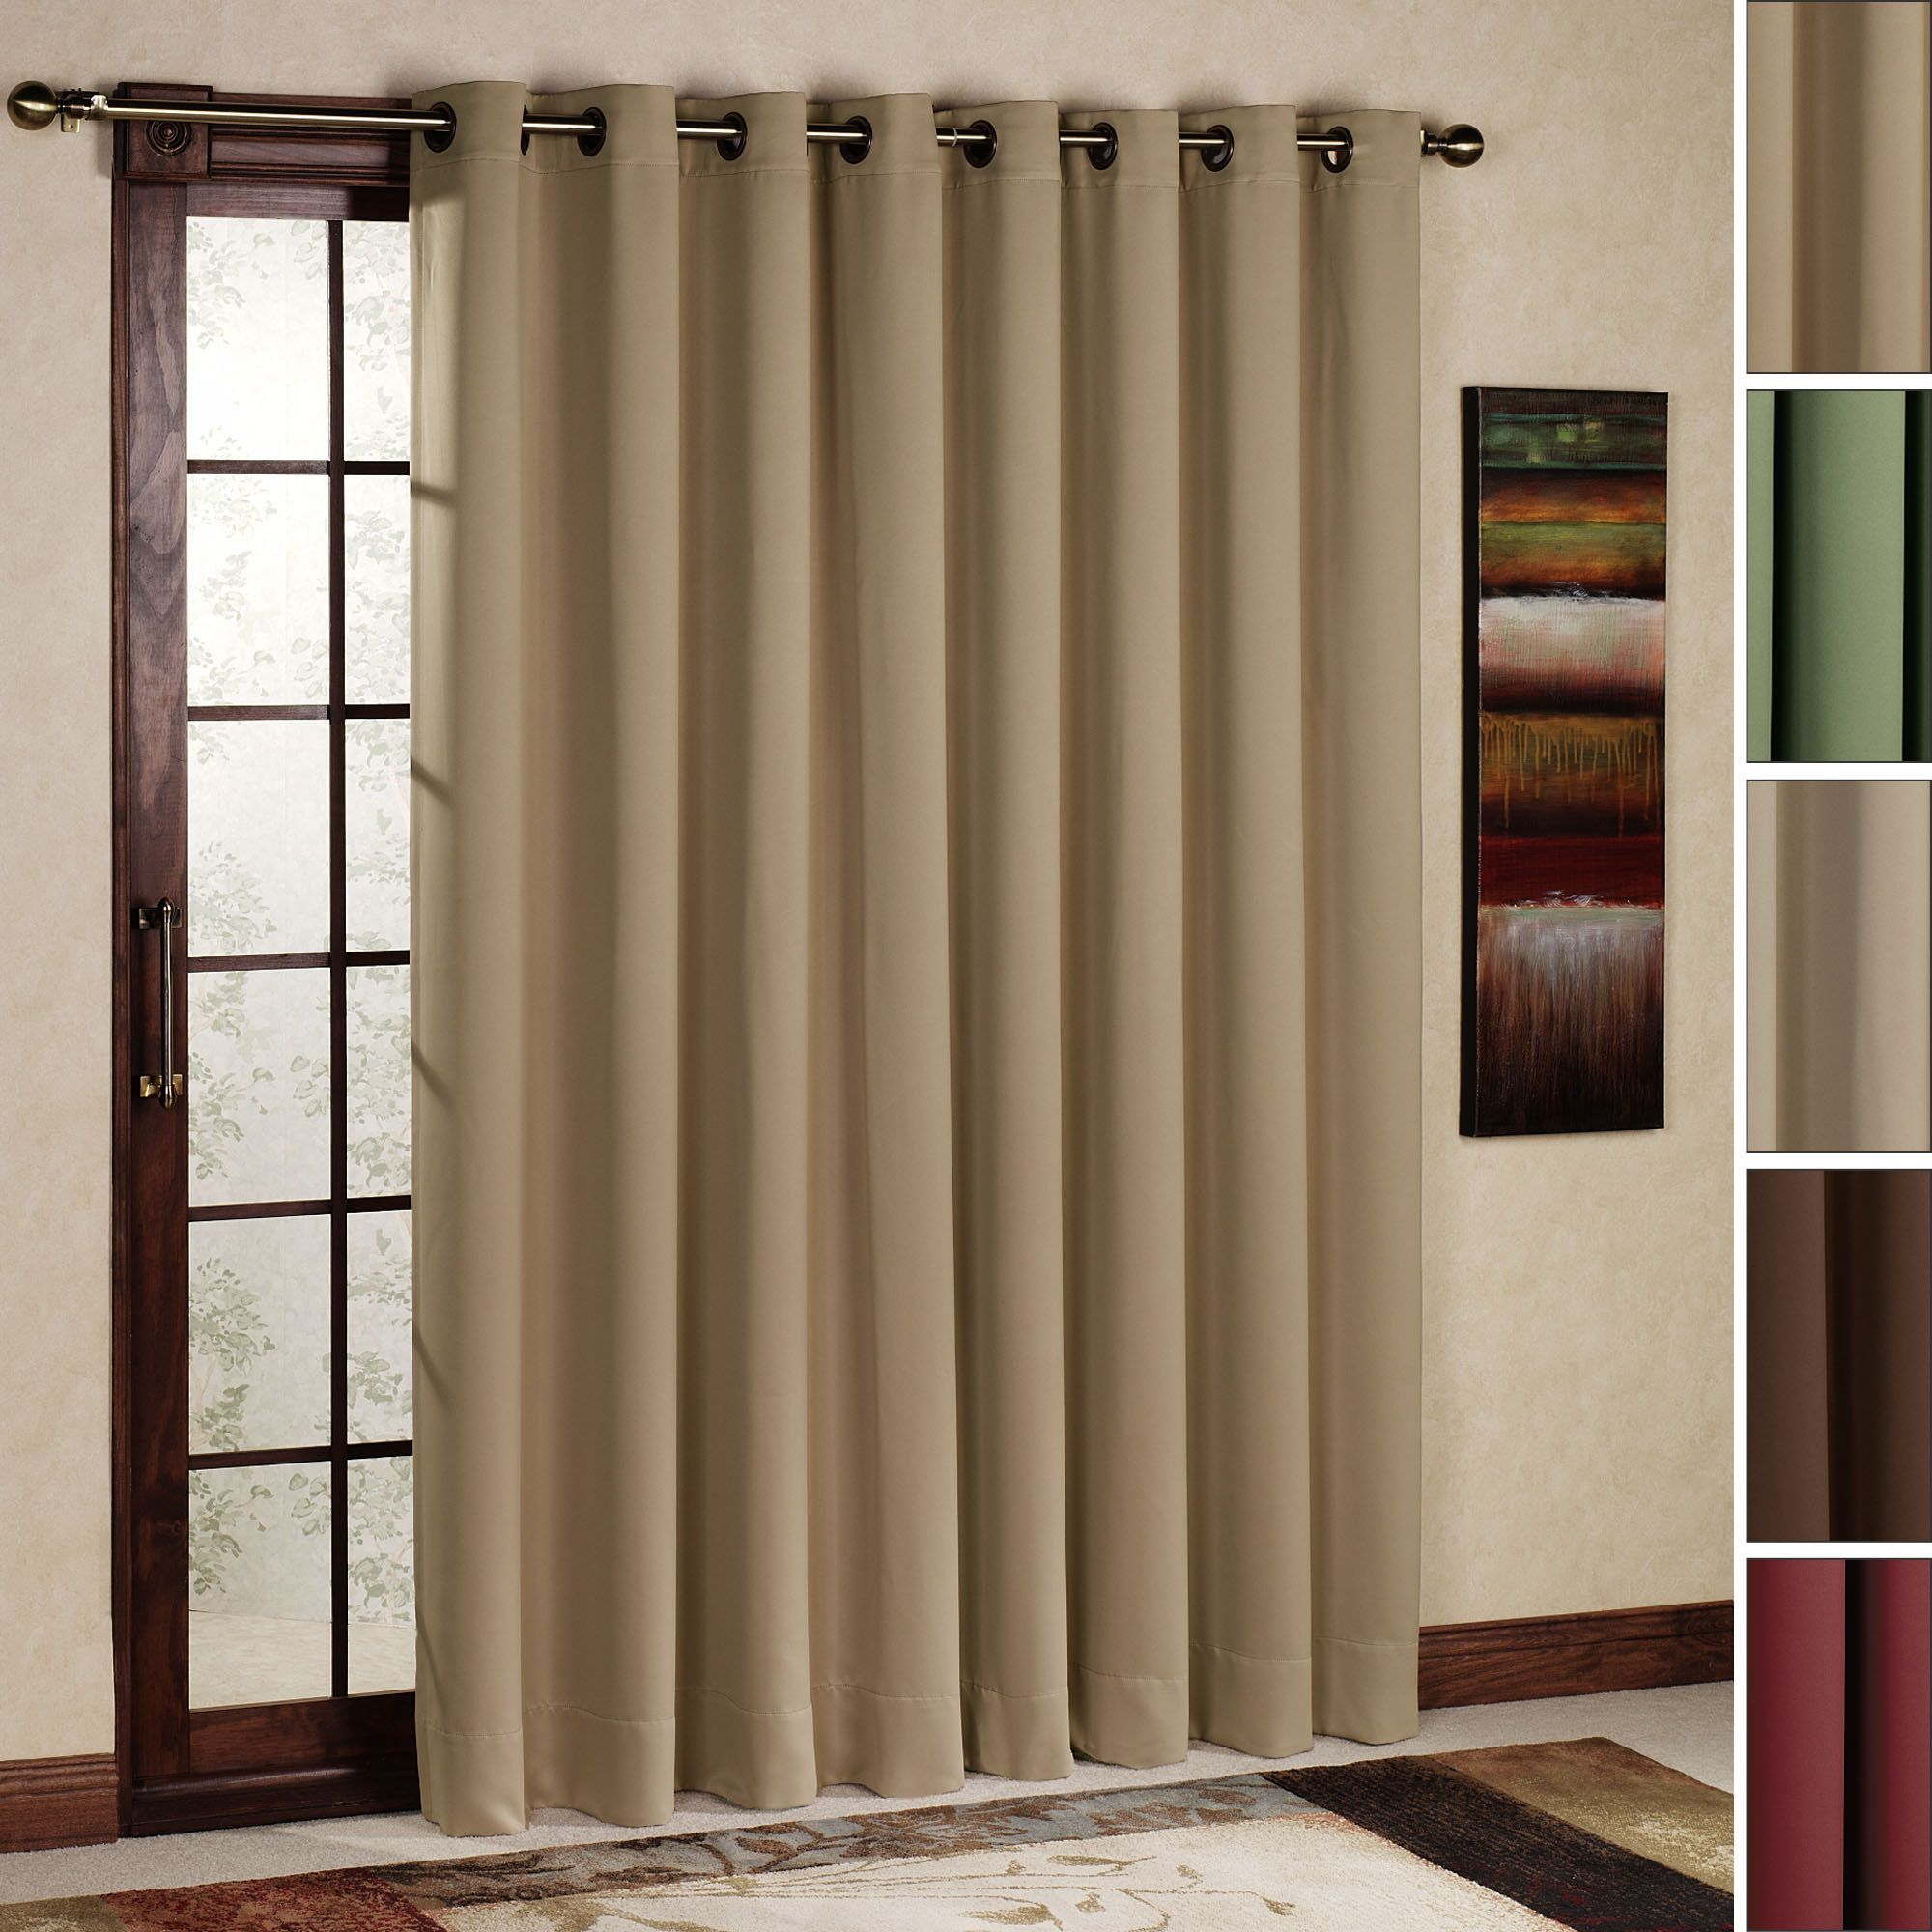 Door curtains & Ultimate Blackout Grommet Patio Panel | Modern patio doors ... Pezcame.Com